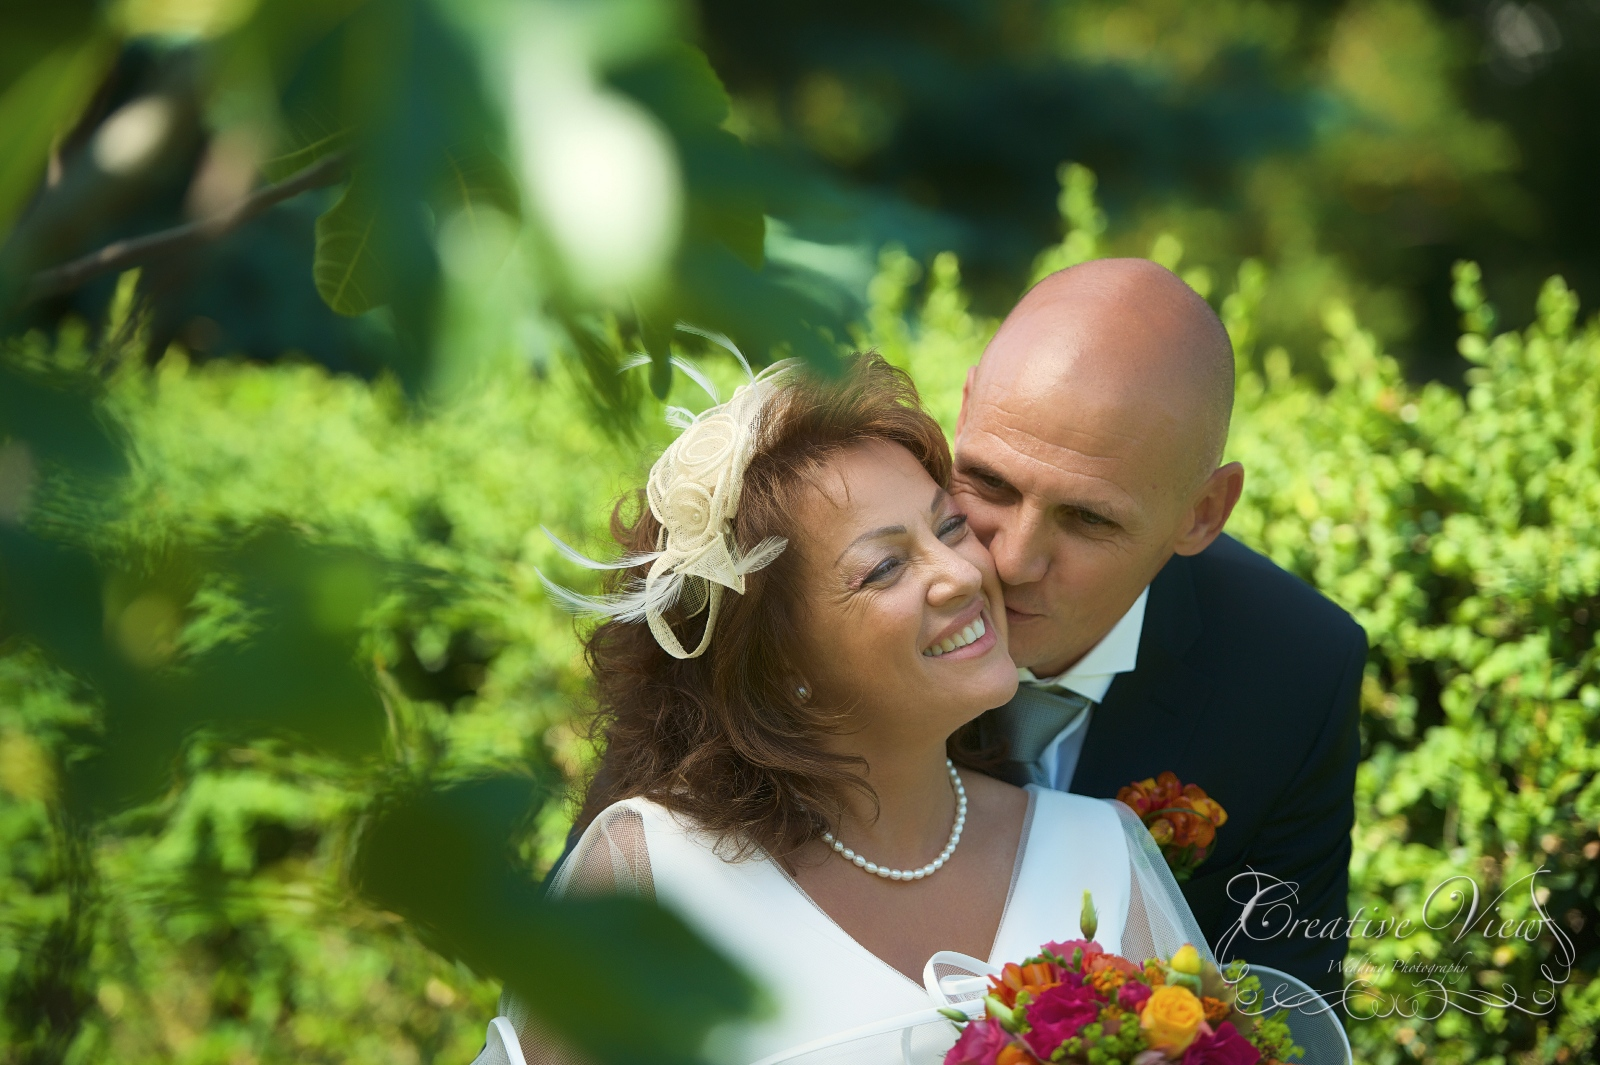 Photographe – Mariage Genève – Mairie d'Avusy